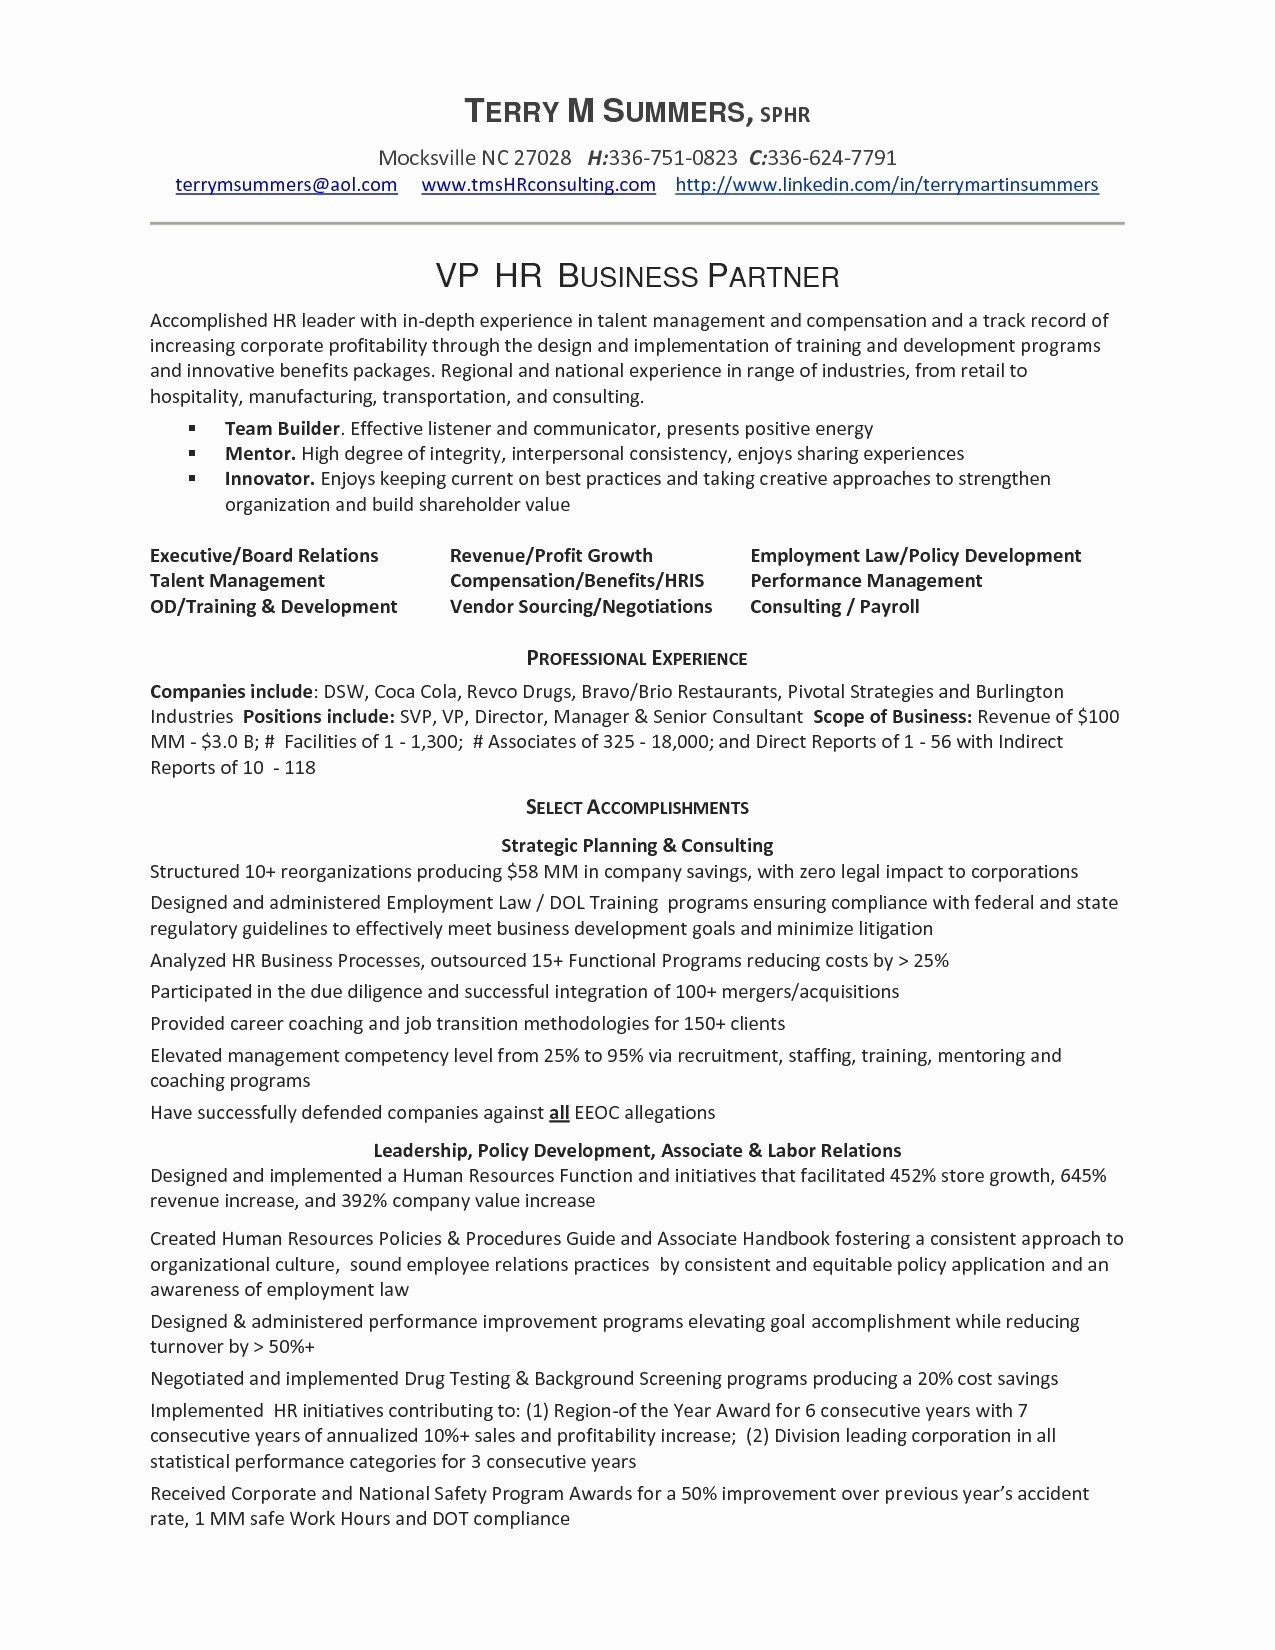 Child Care Provider Resume - 23 Child Care Resume Examples